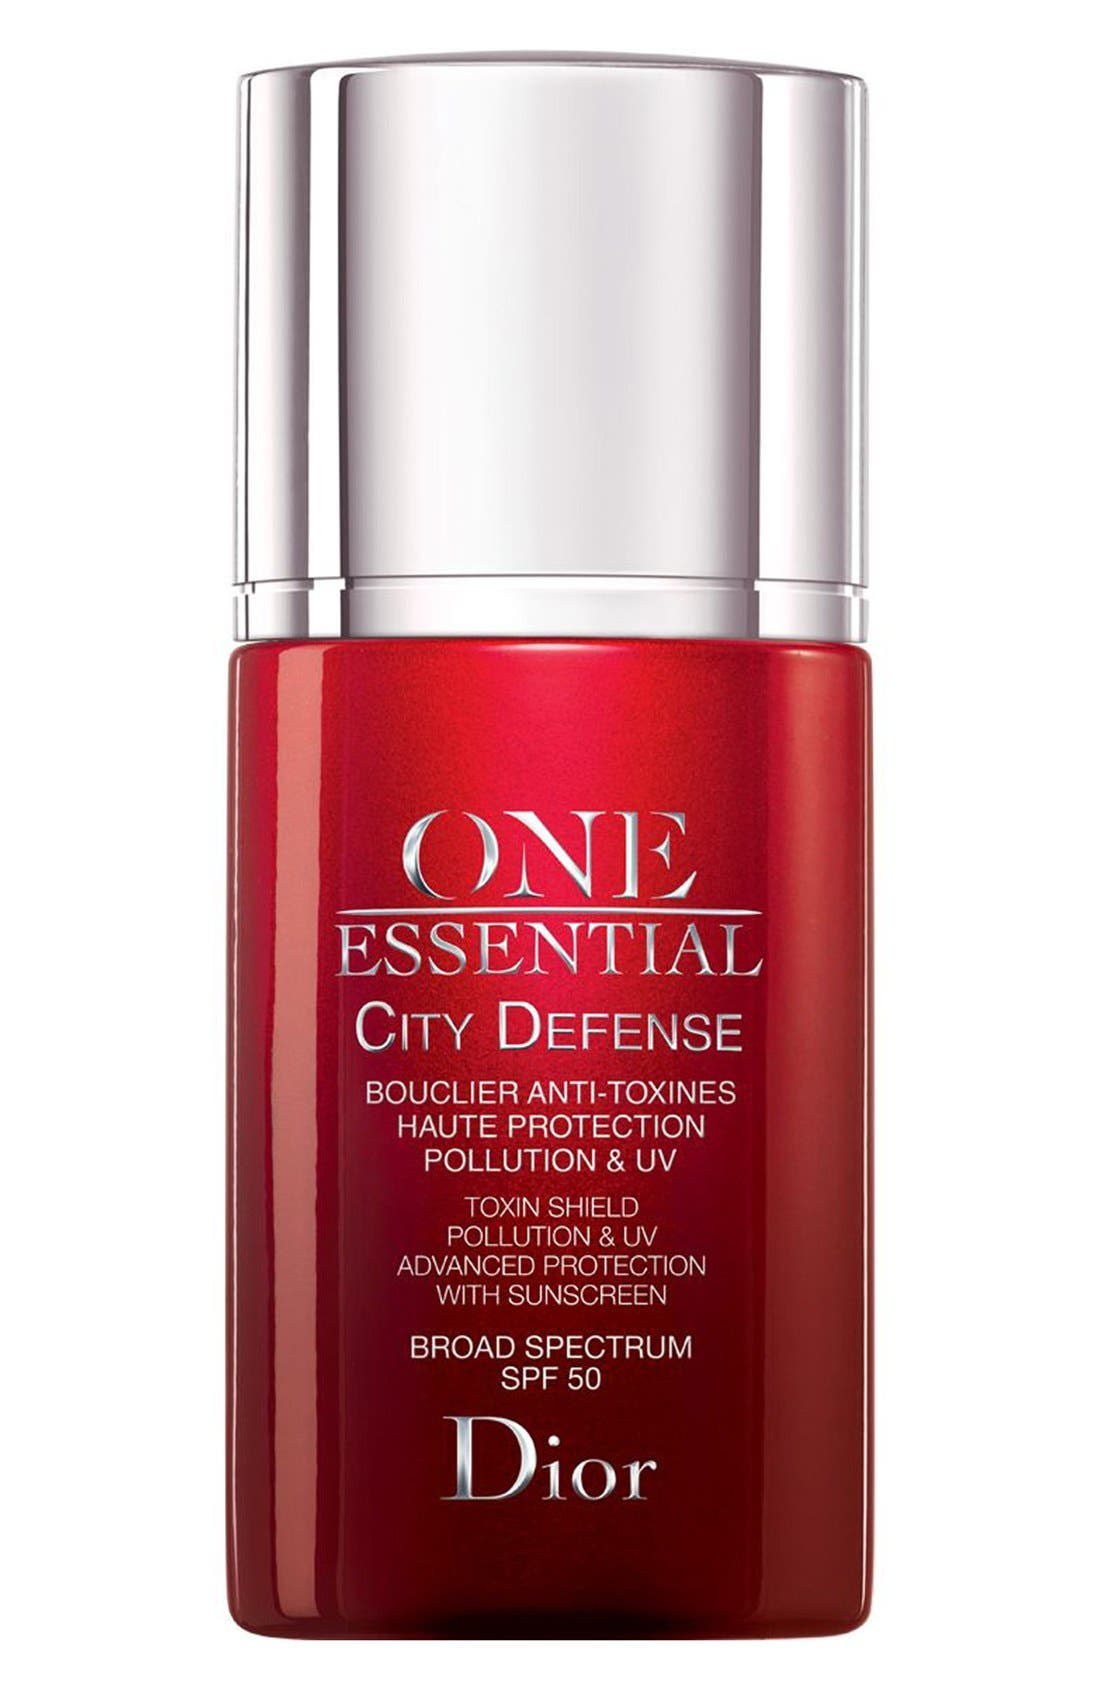 One Essential City Defense Toxin Shield Pollution & UV Advanced Protection SPF 50,                         Main,                         color, NO COLOR